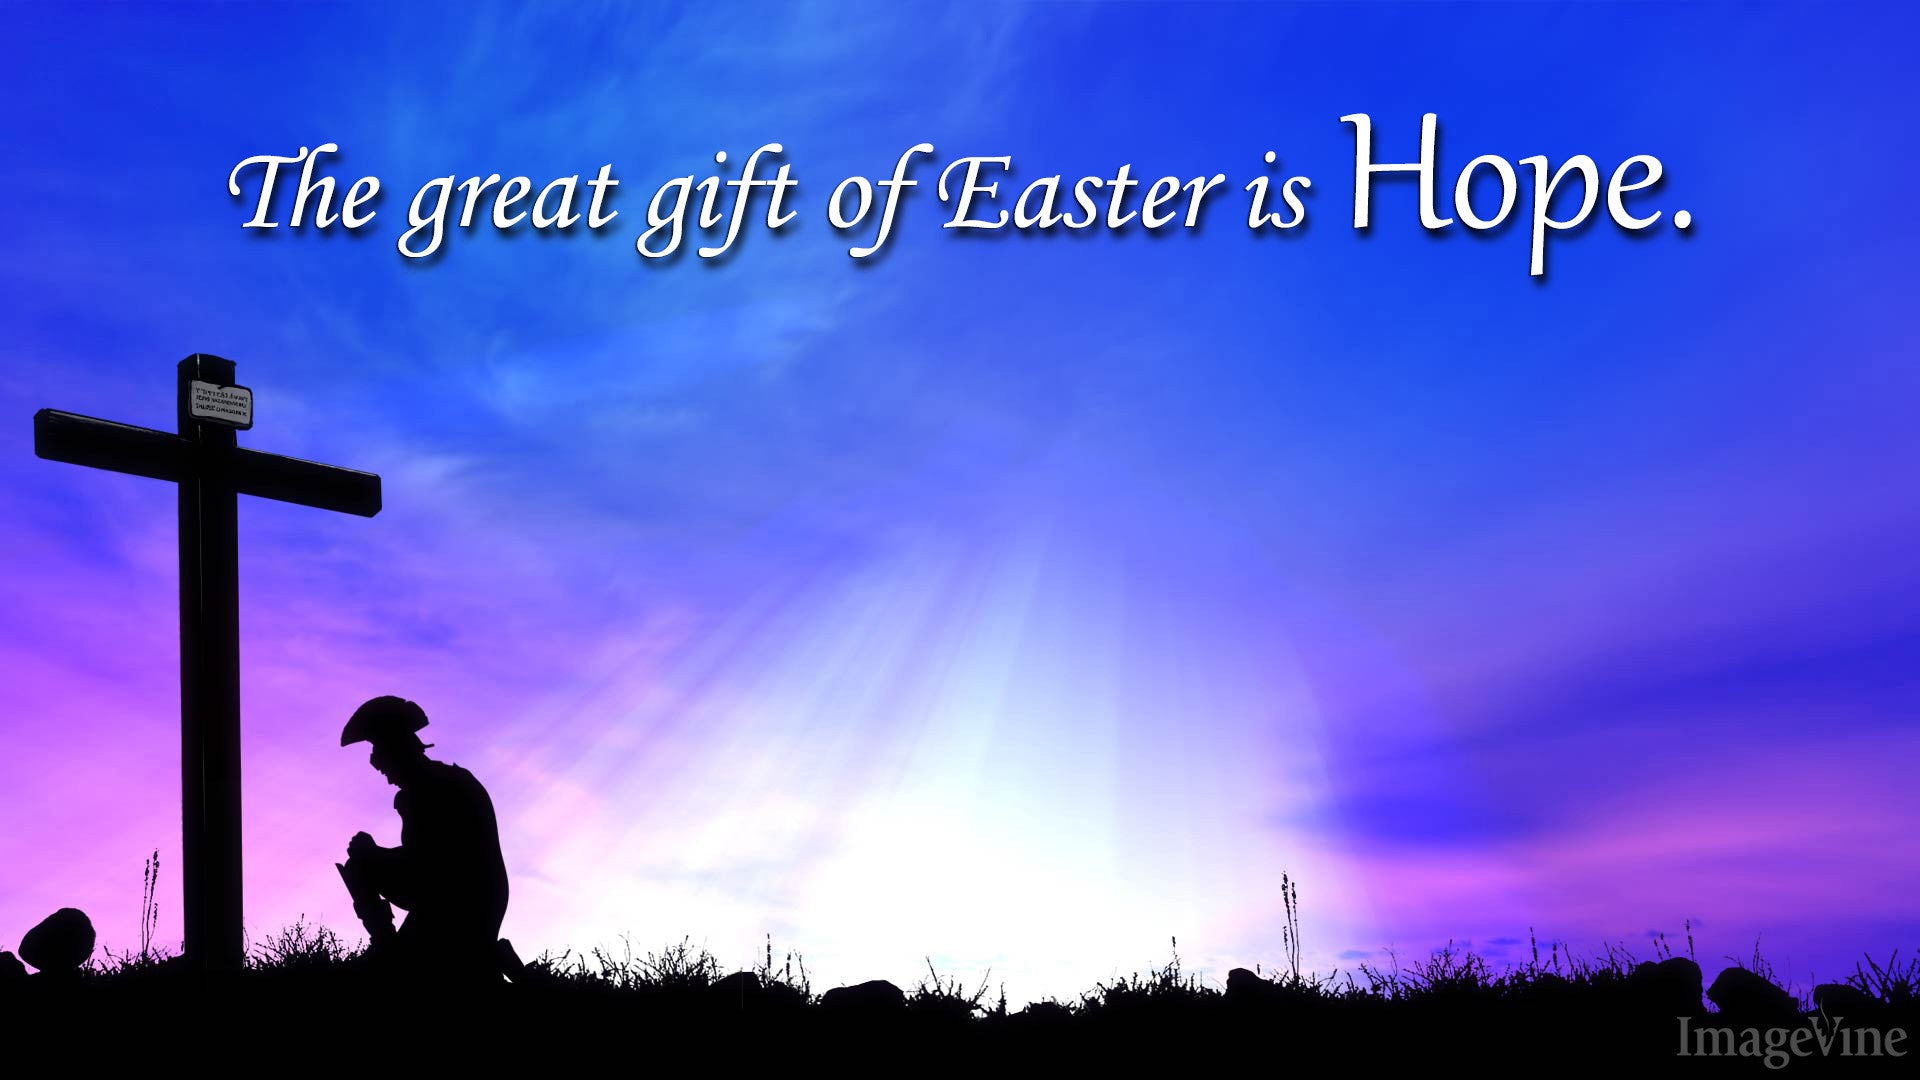 Christian easter backgrounds imagevine easter sunday soldier kneeling cross background christian free quote negle Gallery